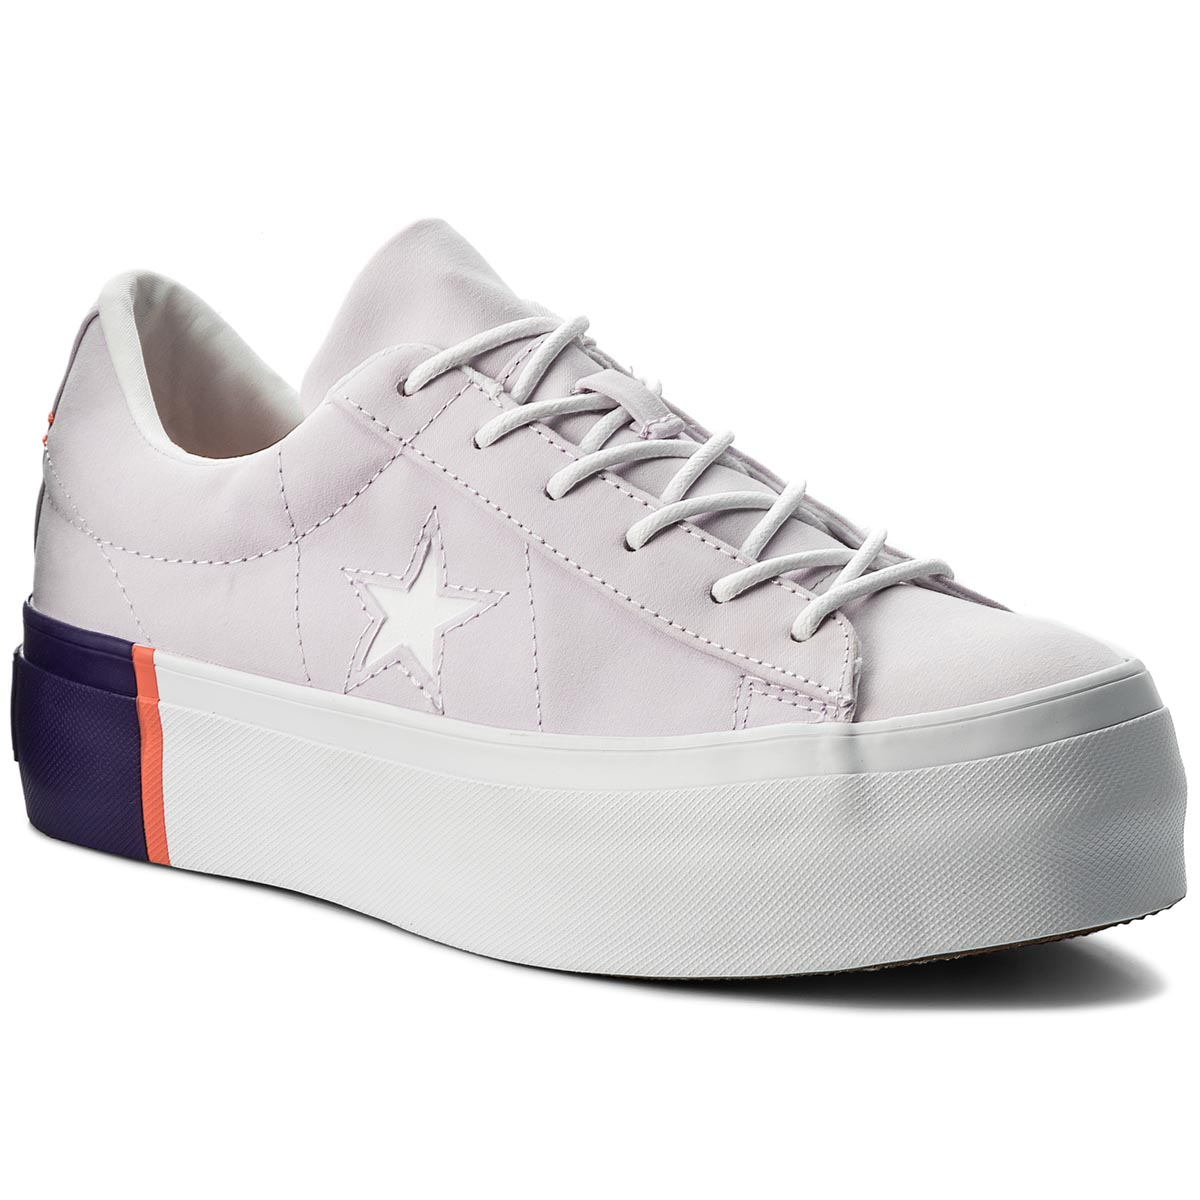 7b7d4bb664bb Sneakers CONVERSE One Star Platform Ox 559902C Barely Grape Rush Coral White